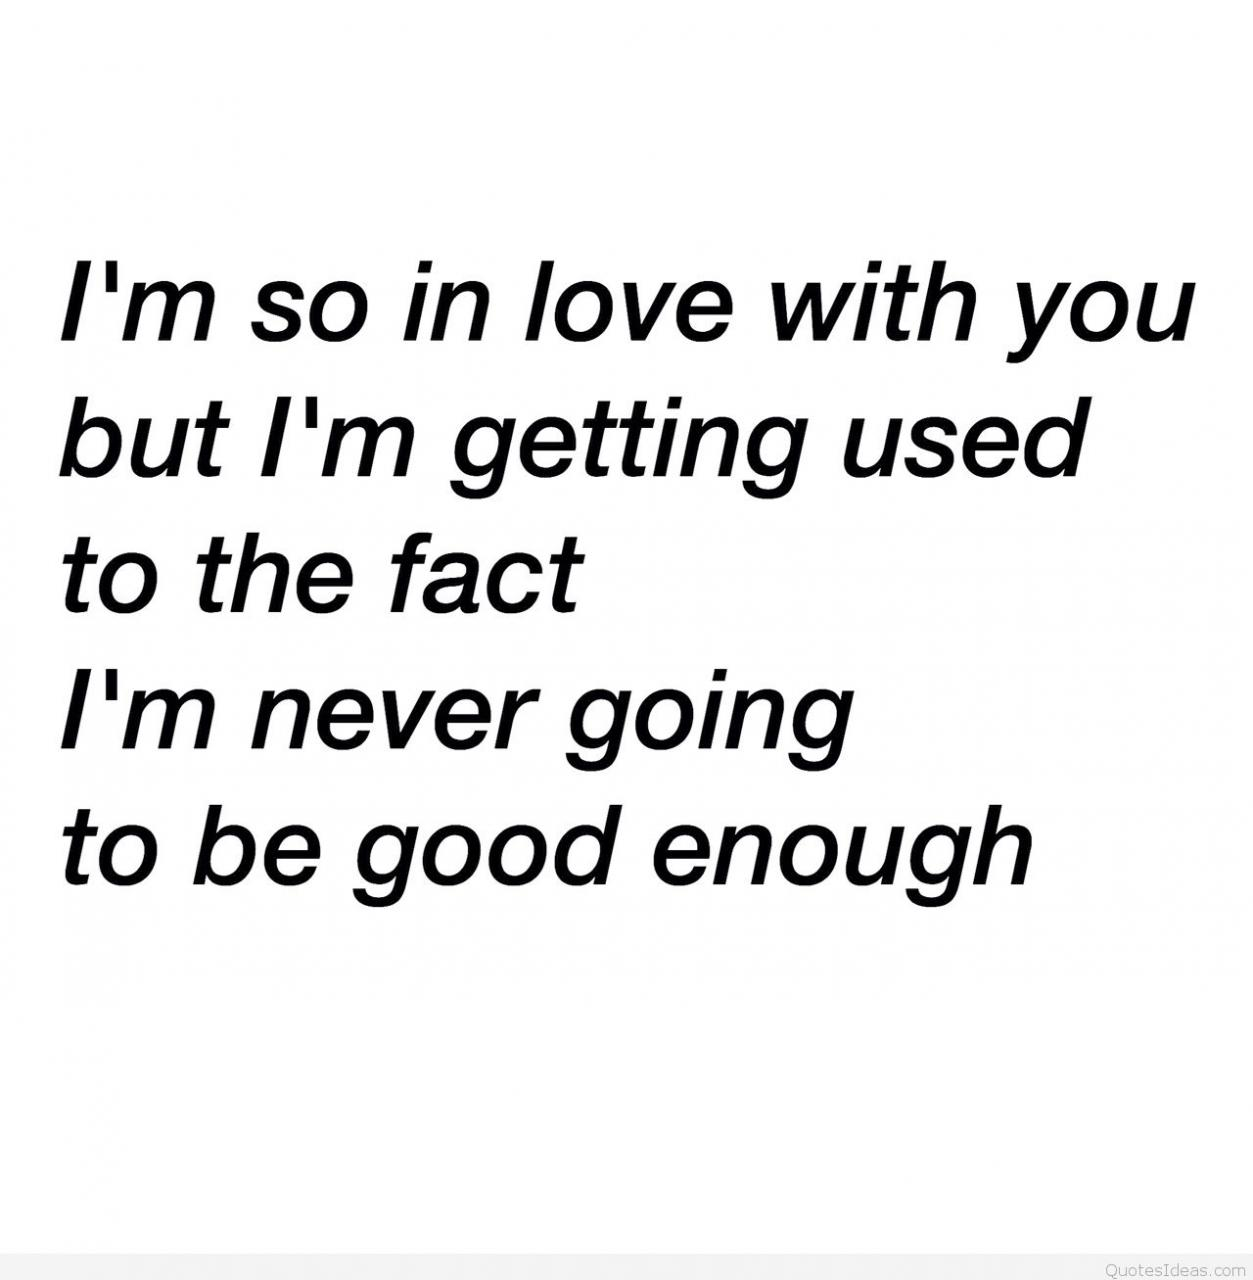 Sad Love Quotes For Him Tumblr Sad Quotes About Love  Sad Love Quotes Tumblr